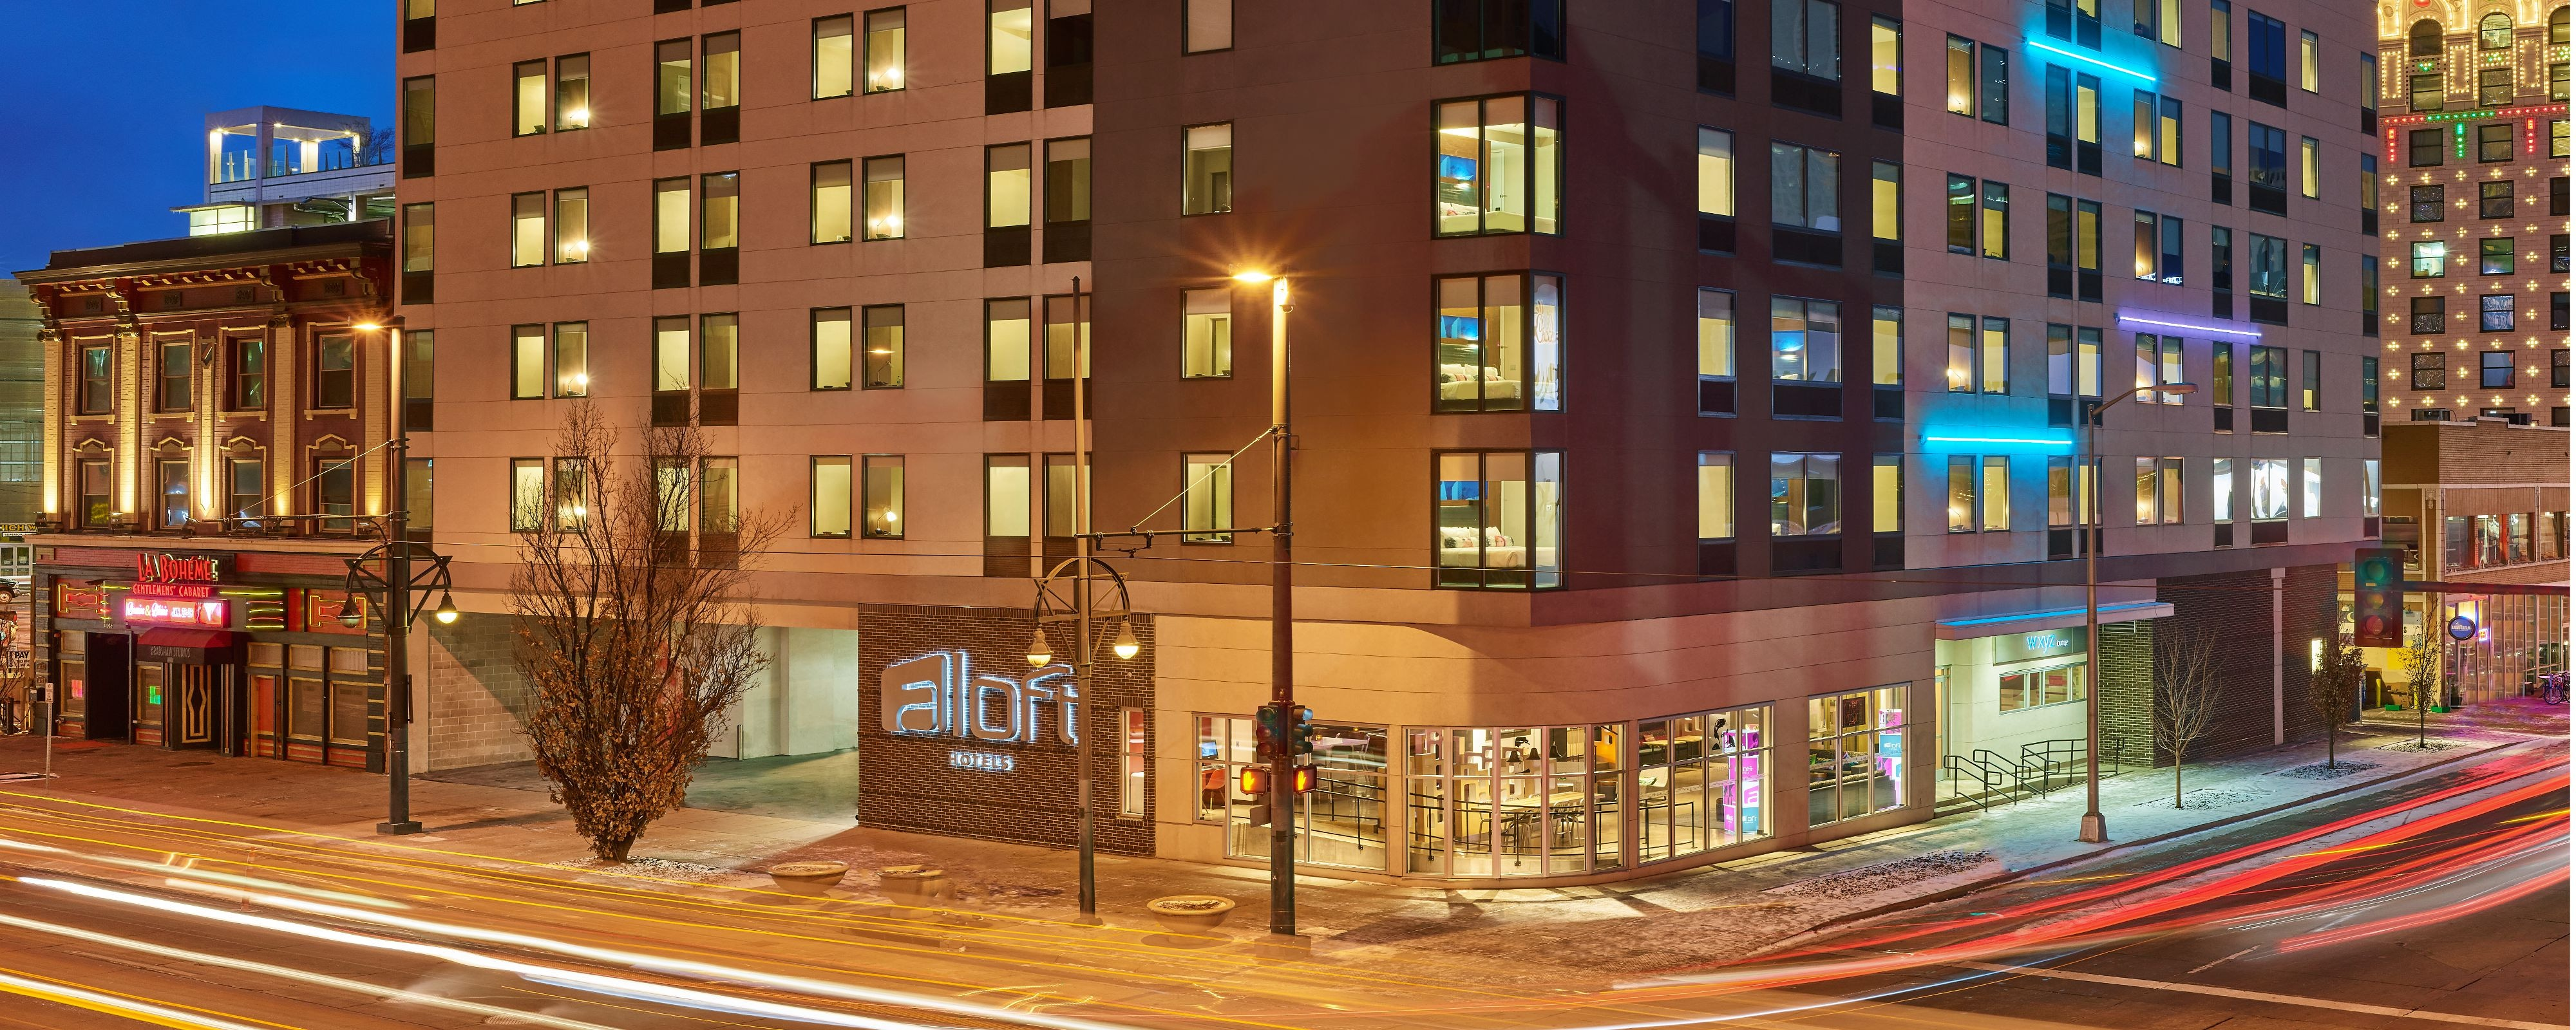 Aloft Denver Downtown - Denver | SPG